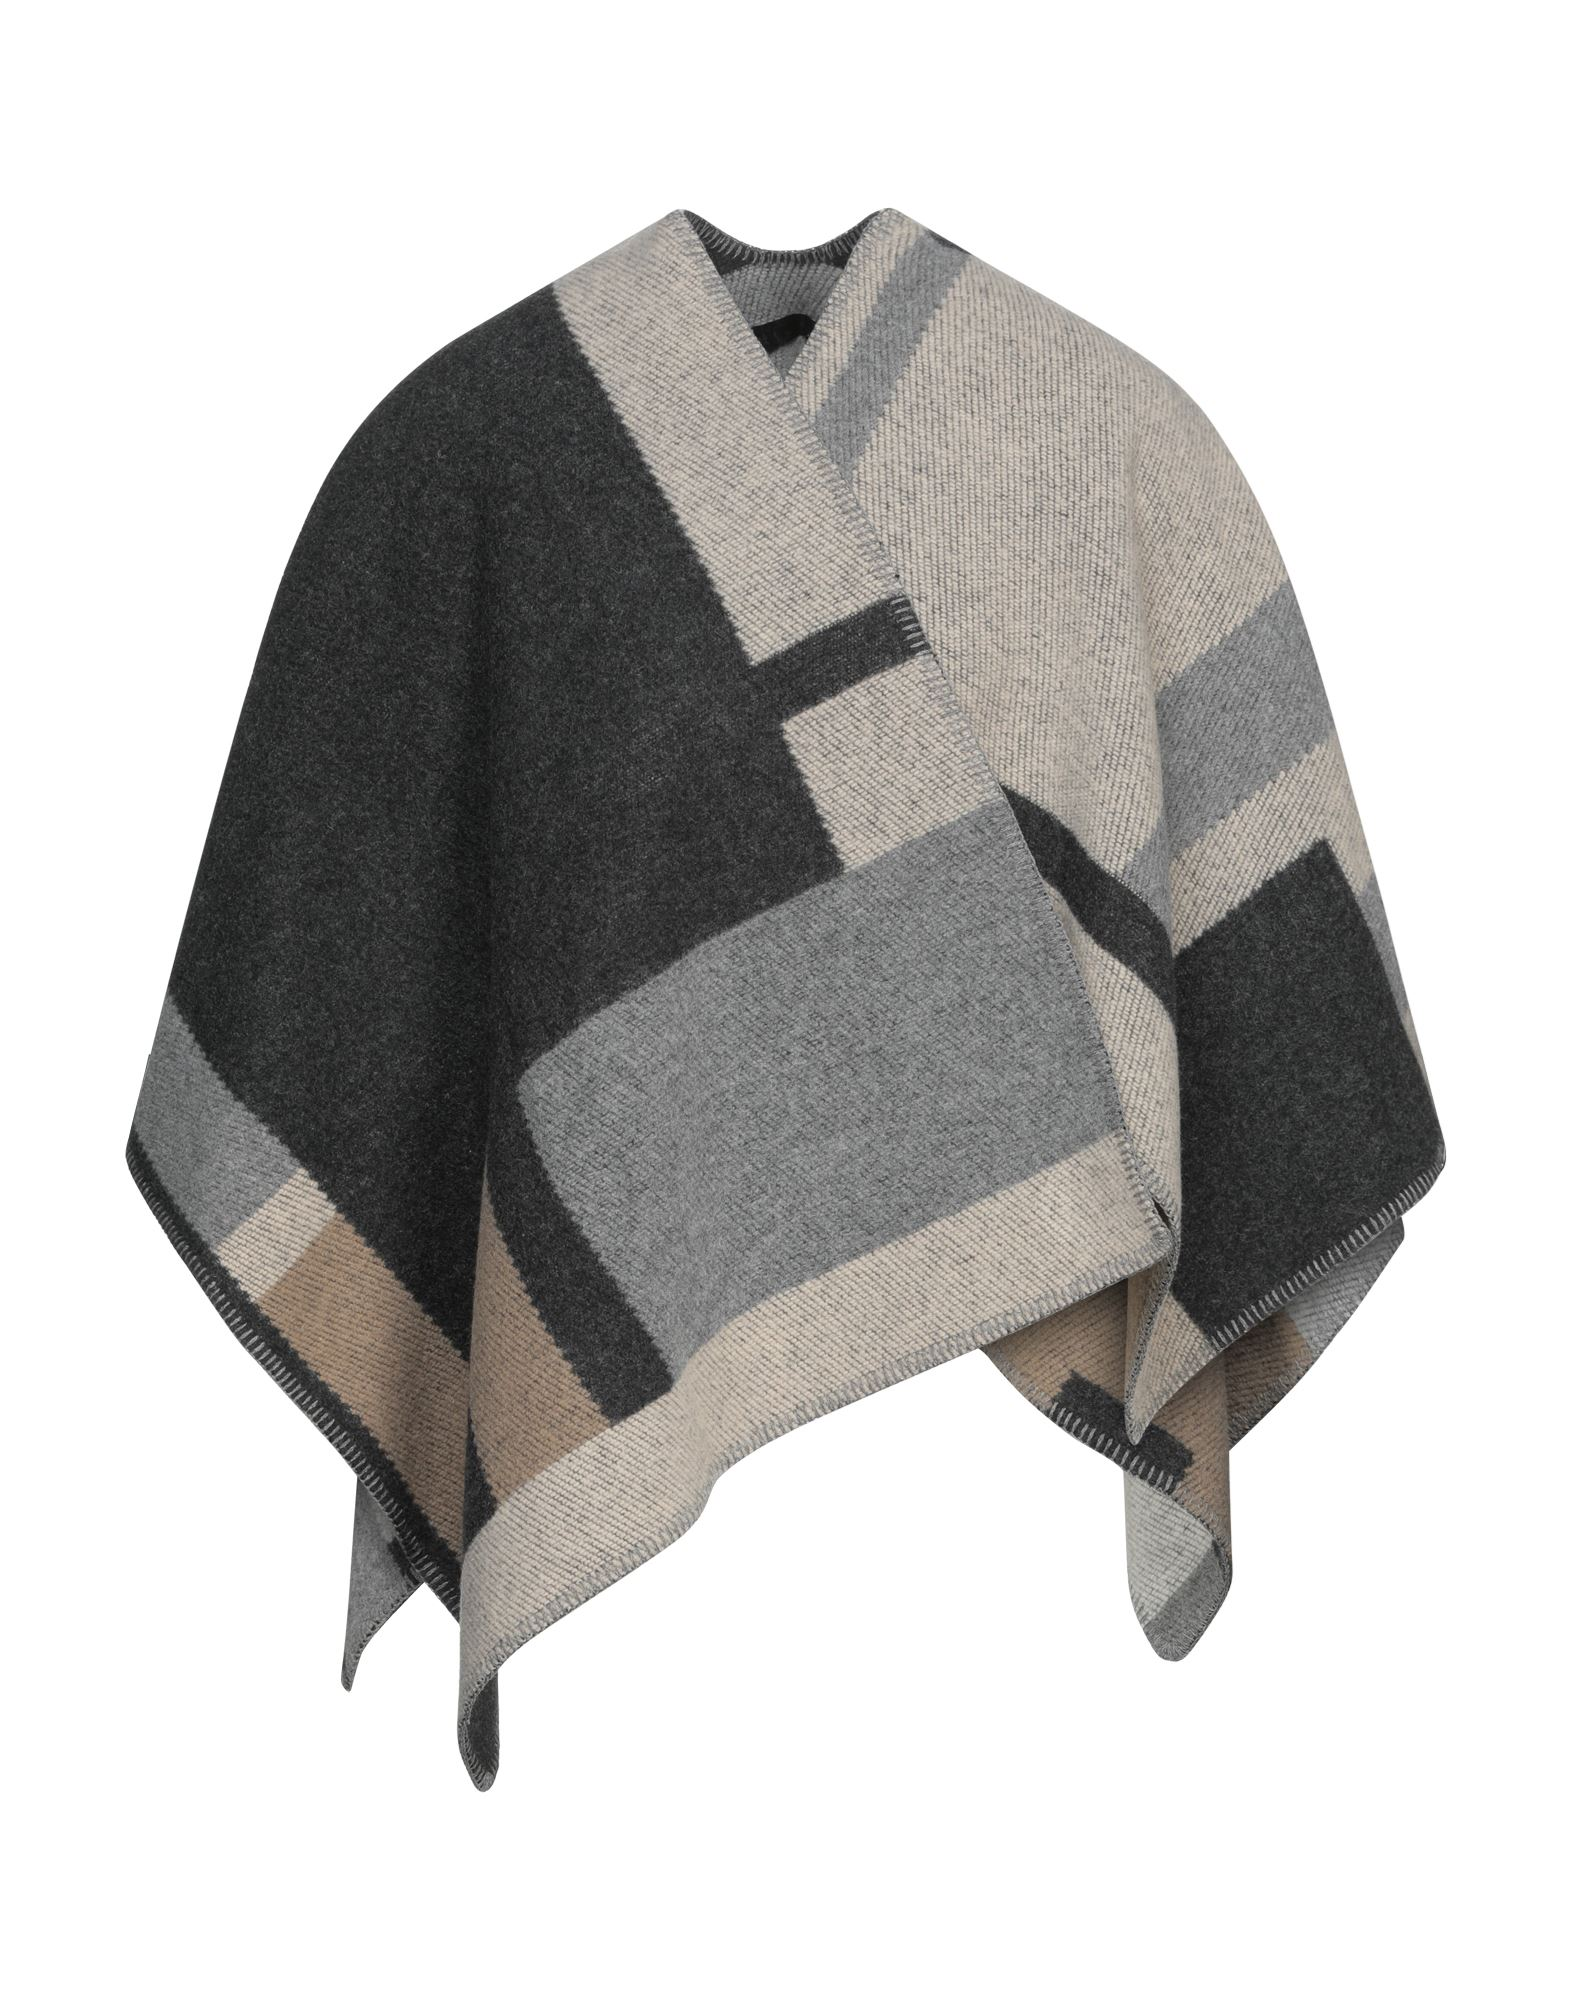 Burberry Capes & Ponchos In Gray